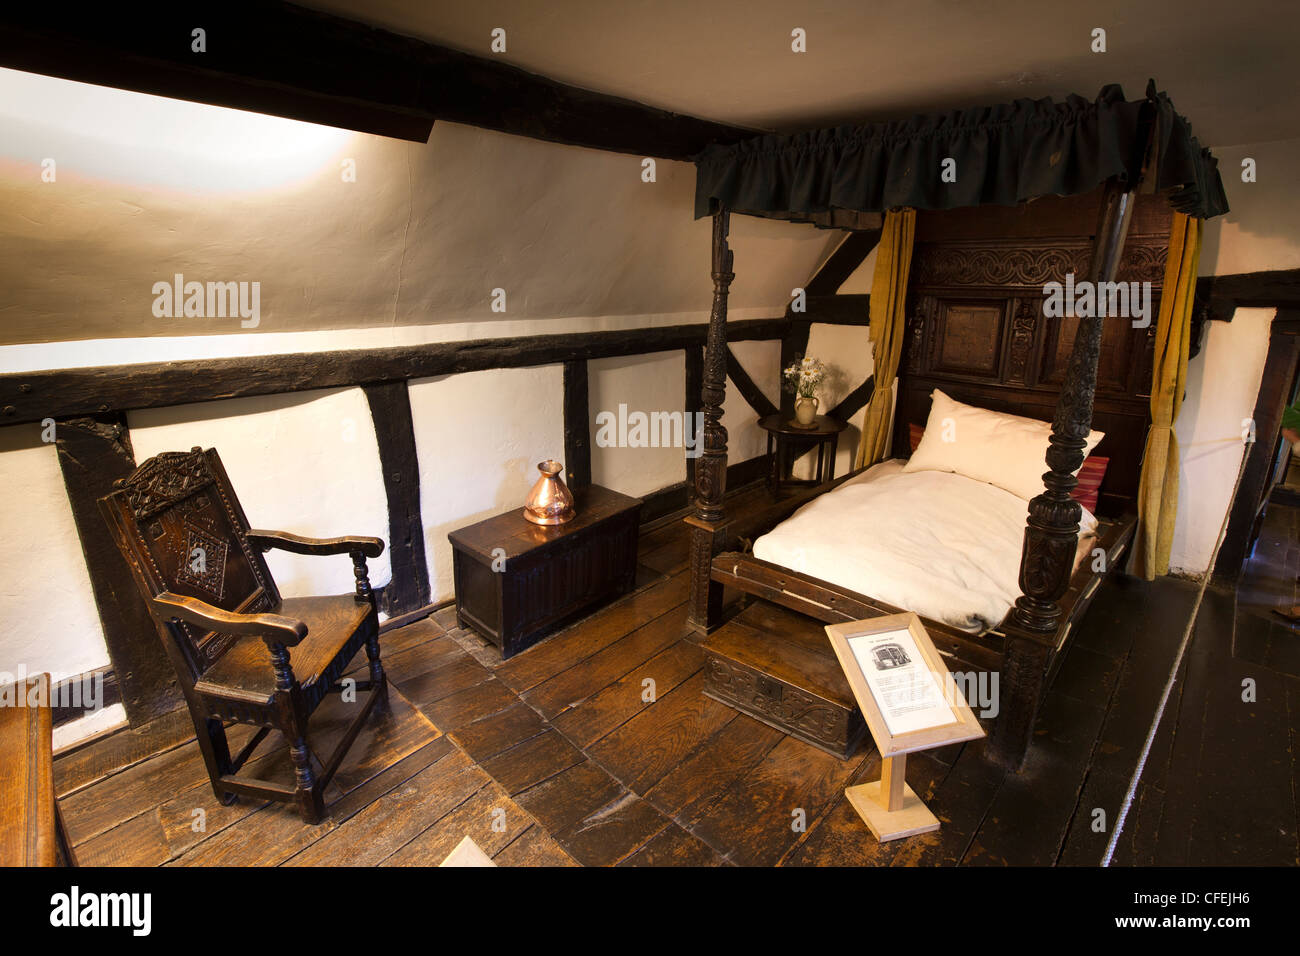 Warwickshire, Shottery Anne Hathawayu0027s Cottage Interior, Hathaway Bed And  Shakespeare Courting Chair